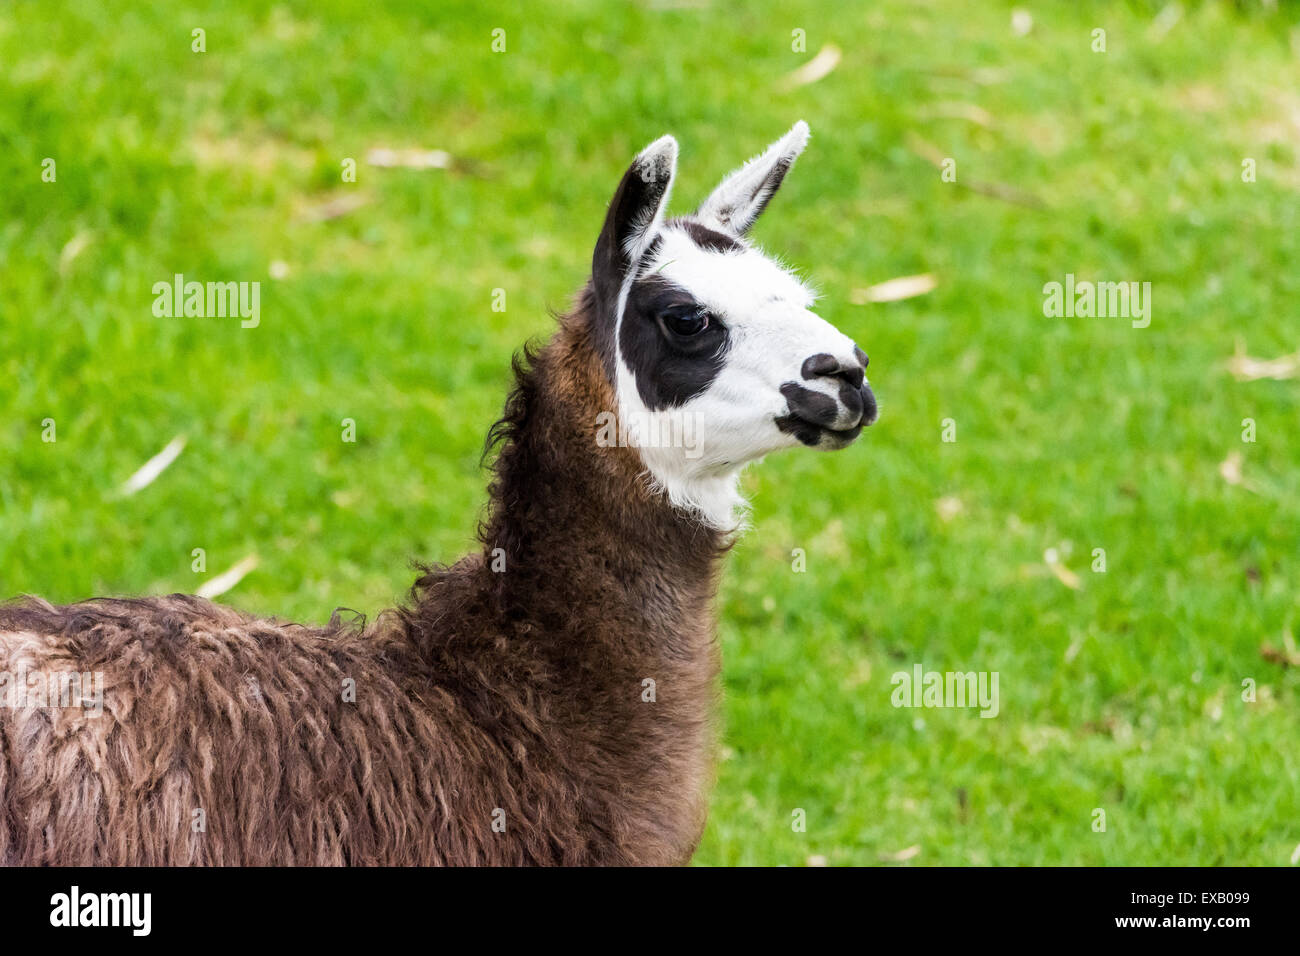 A brown white llama grazing on green grass. - Stock Image